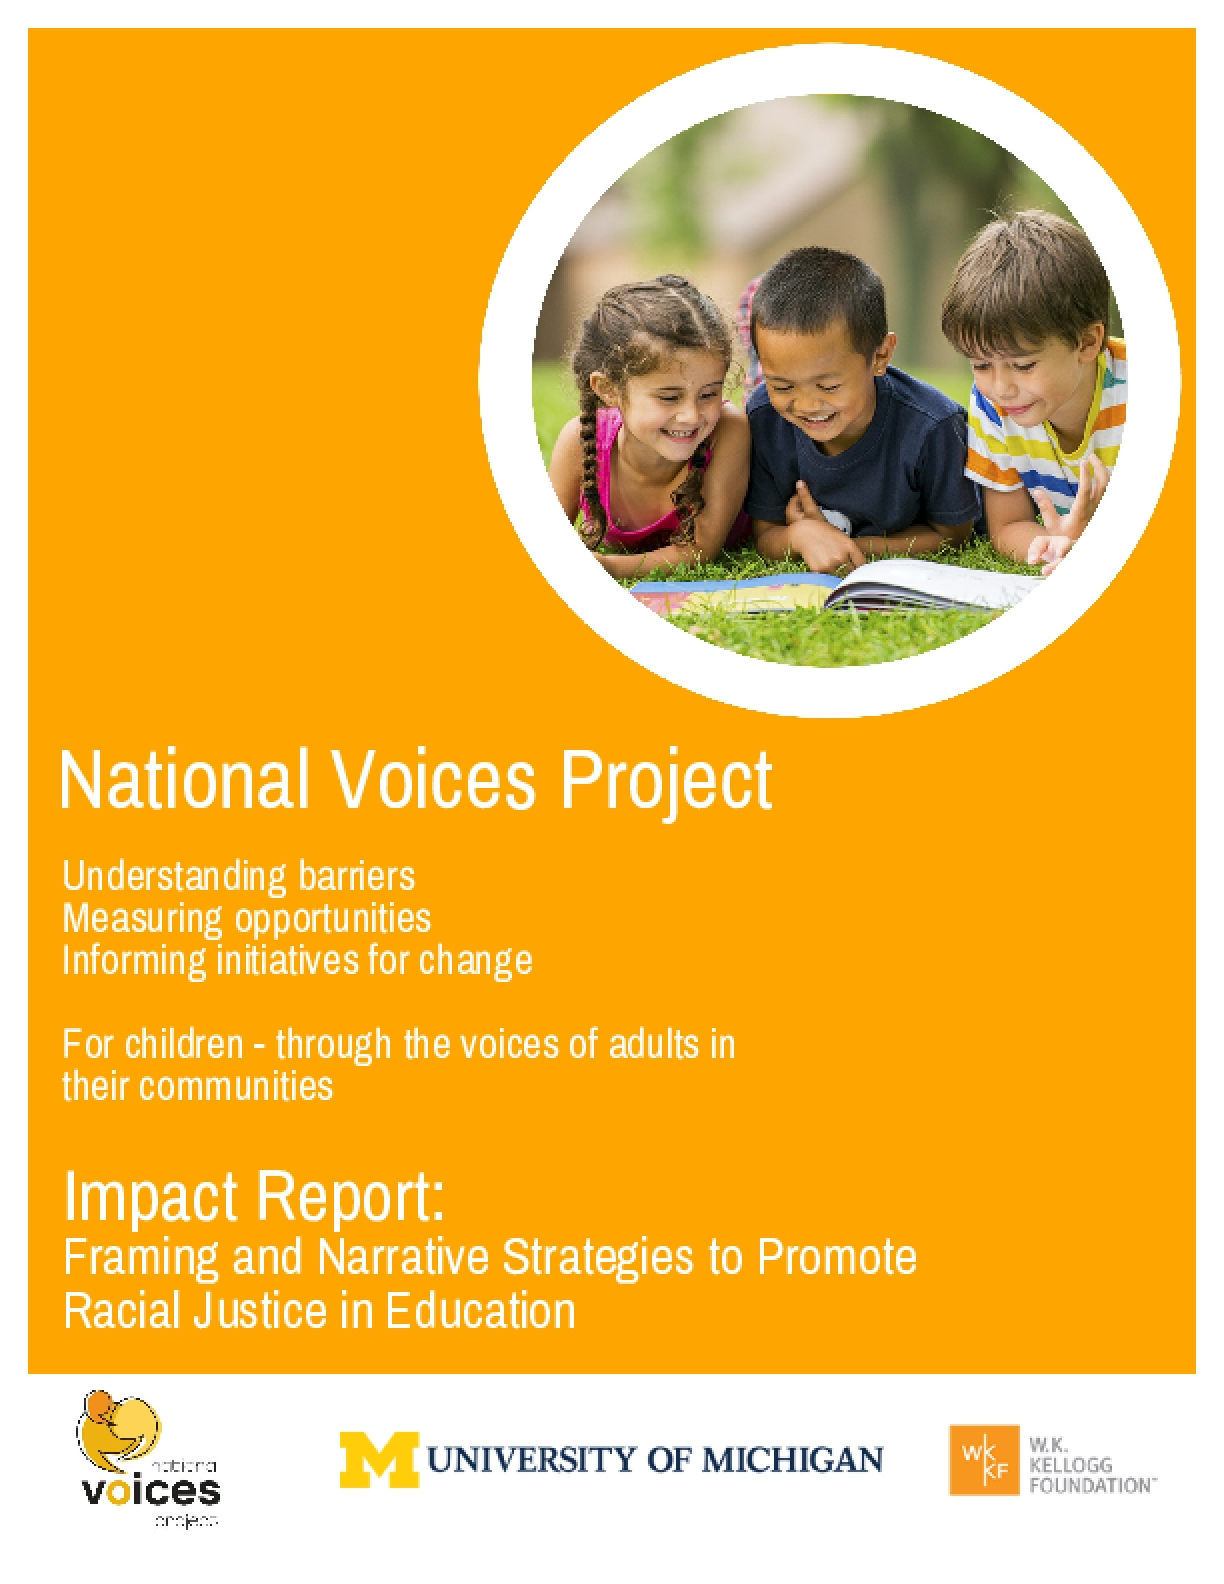 Impact Report: Framing and Narrative Strategies to Promote Racial Justice in Education